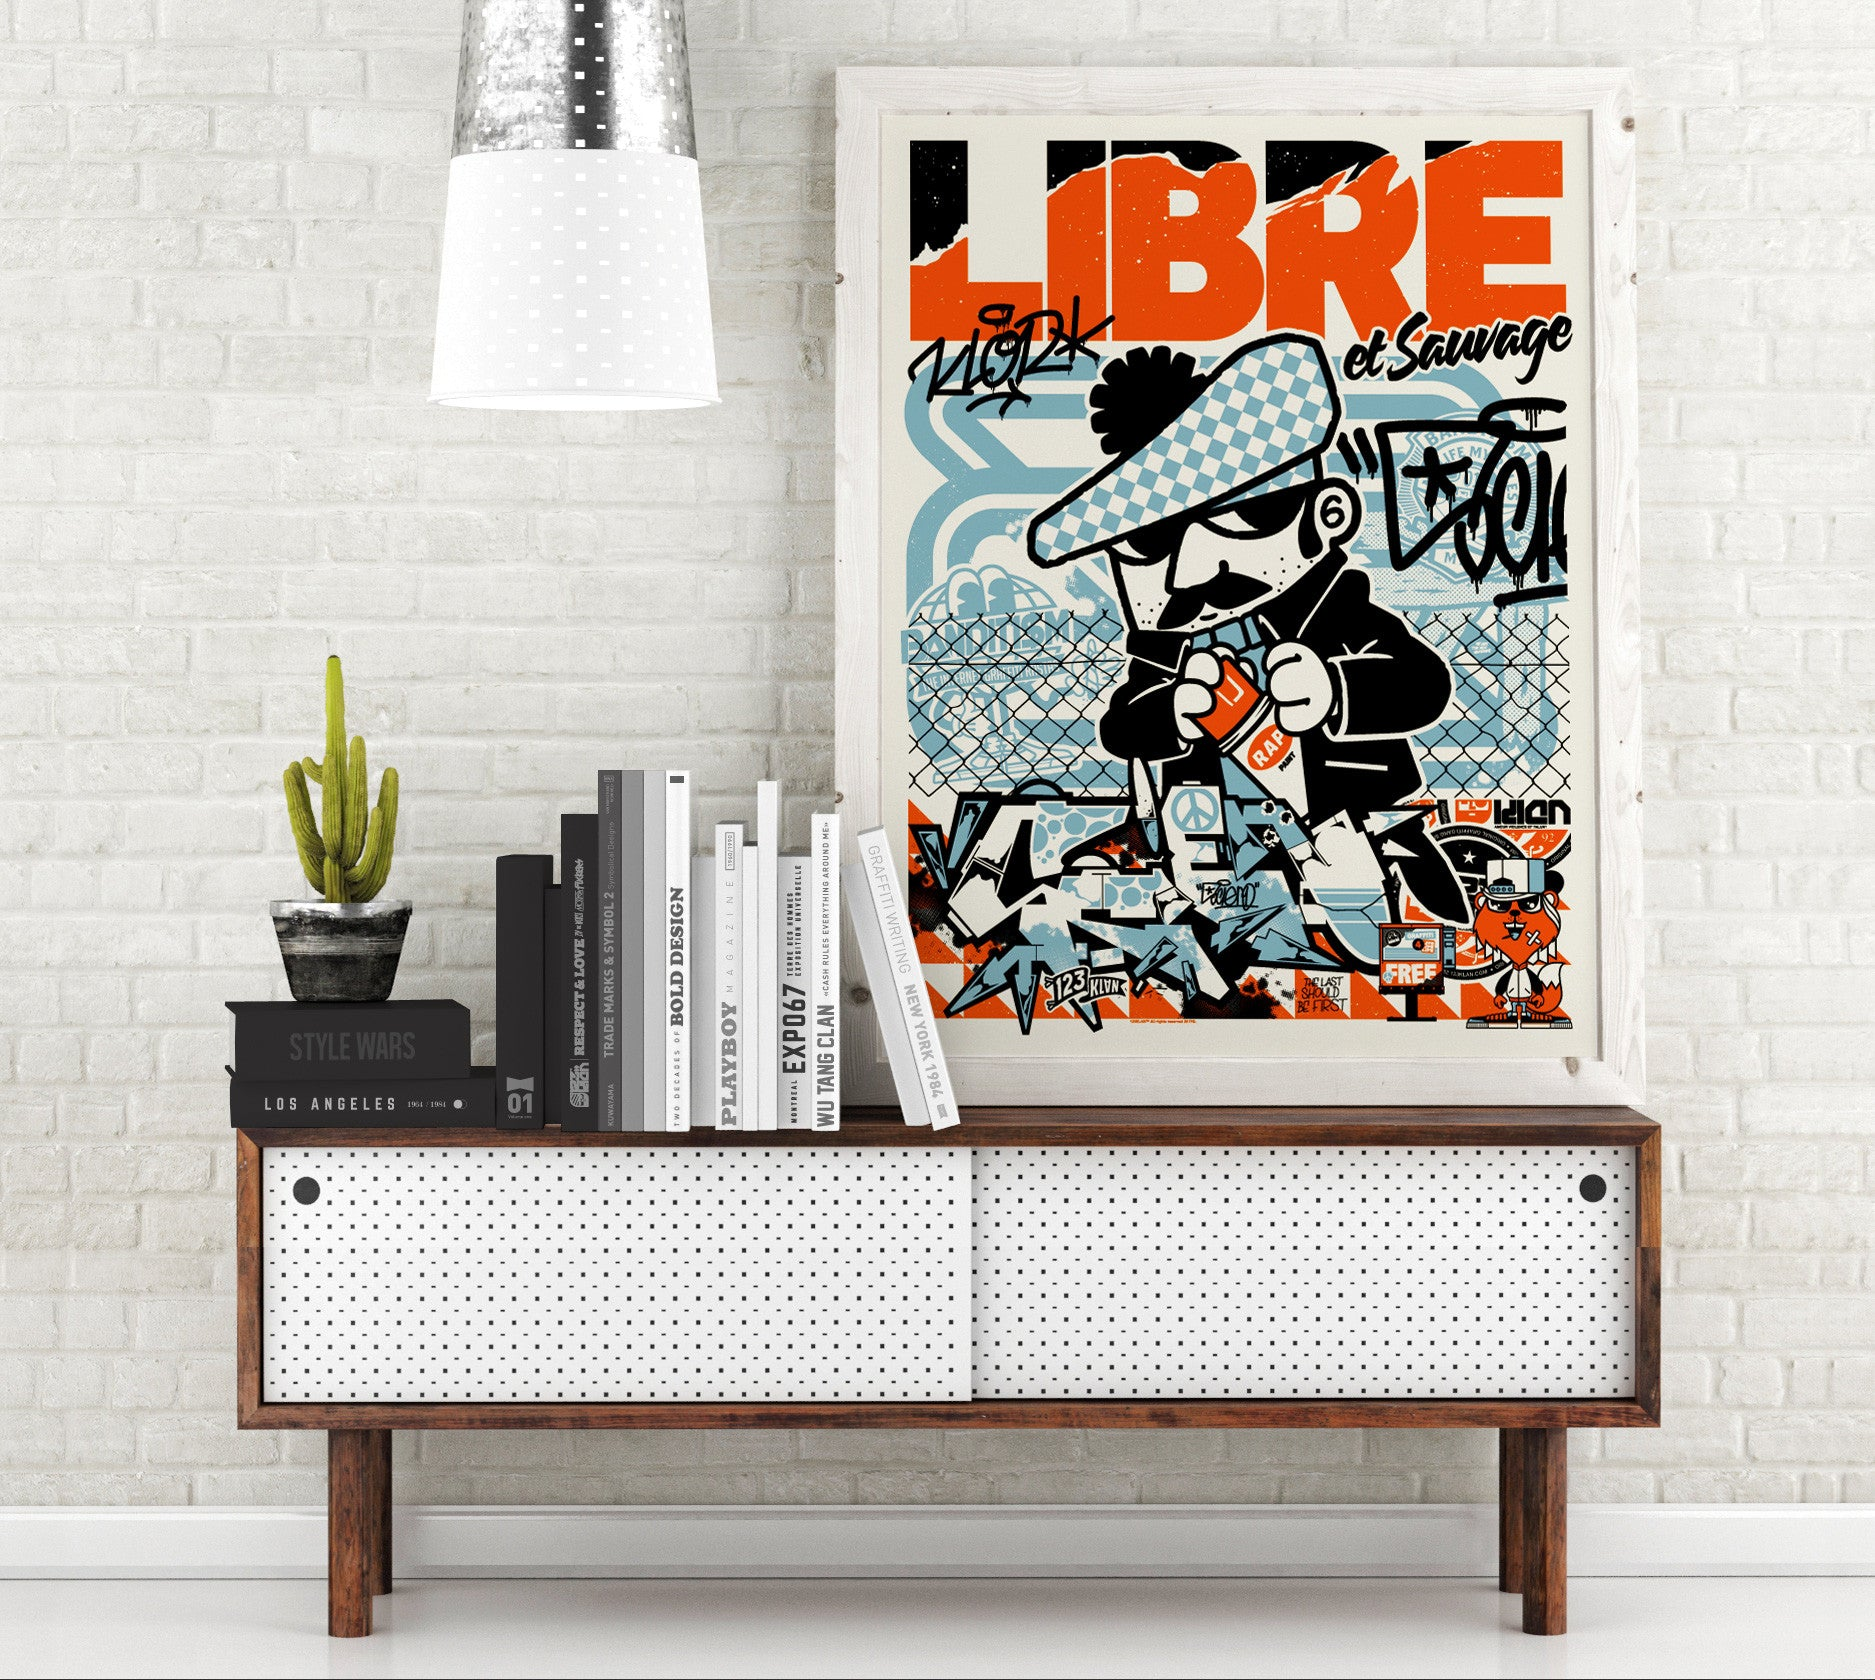 123klan poster libre et sauvage print made in usa